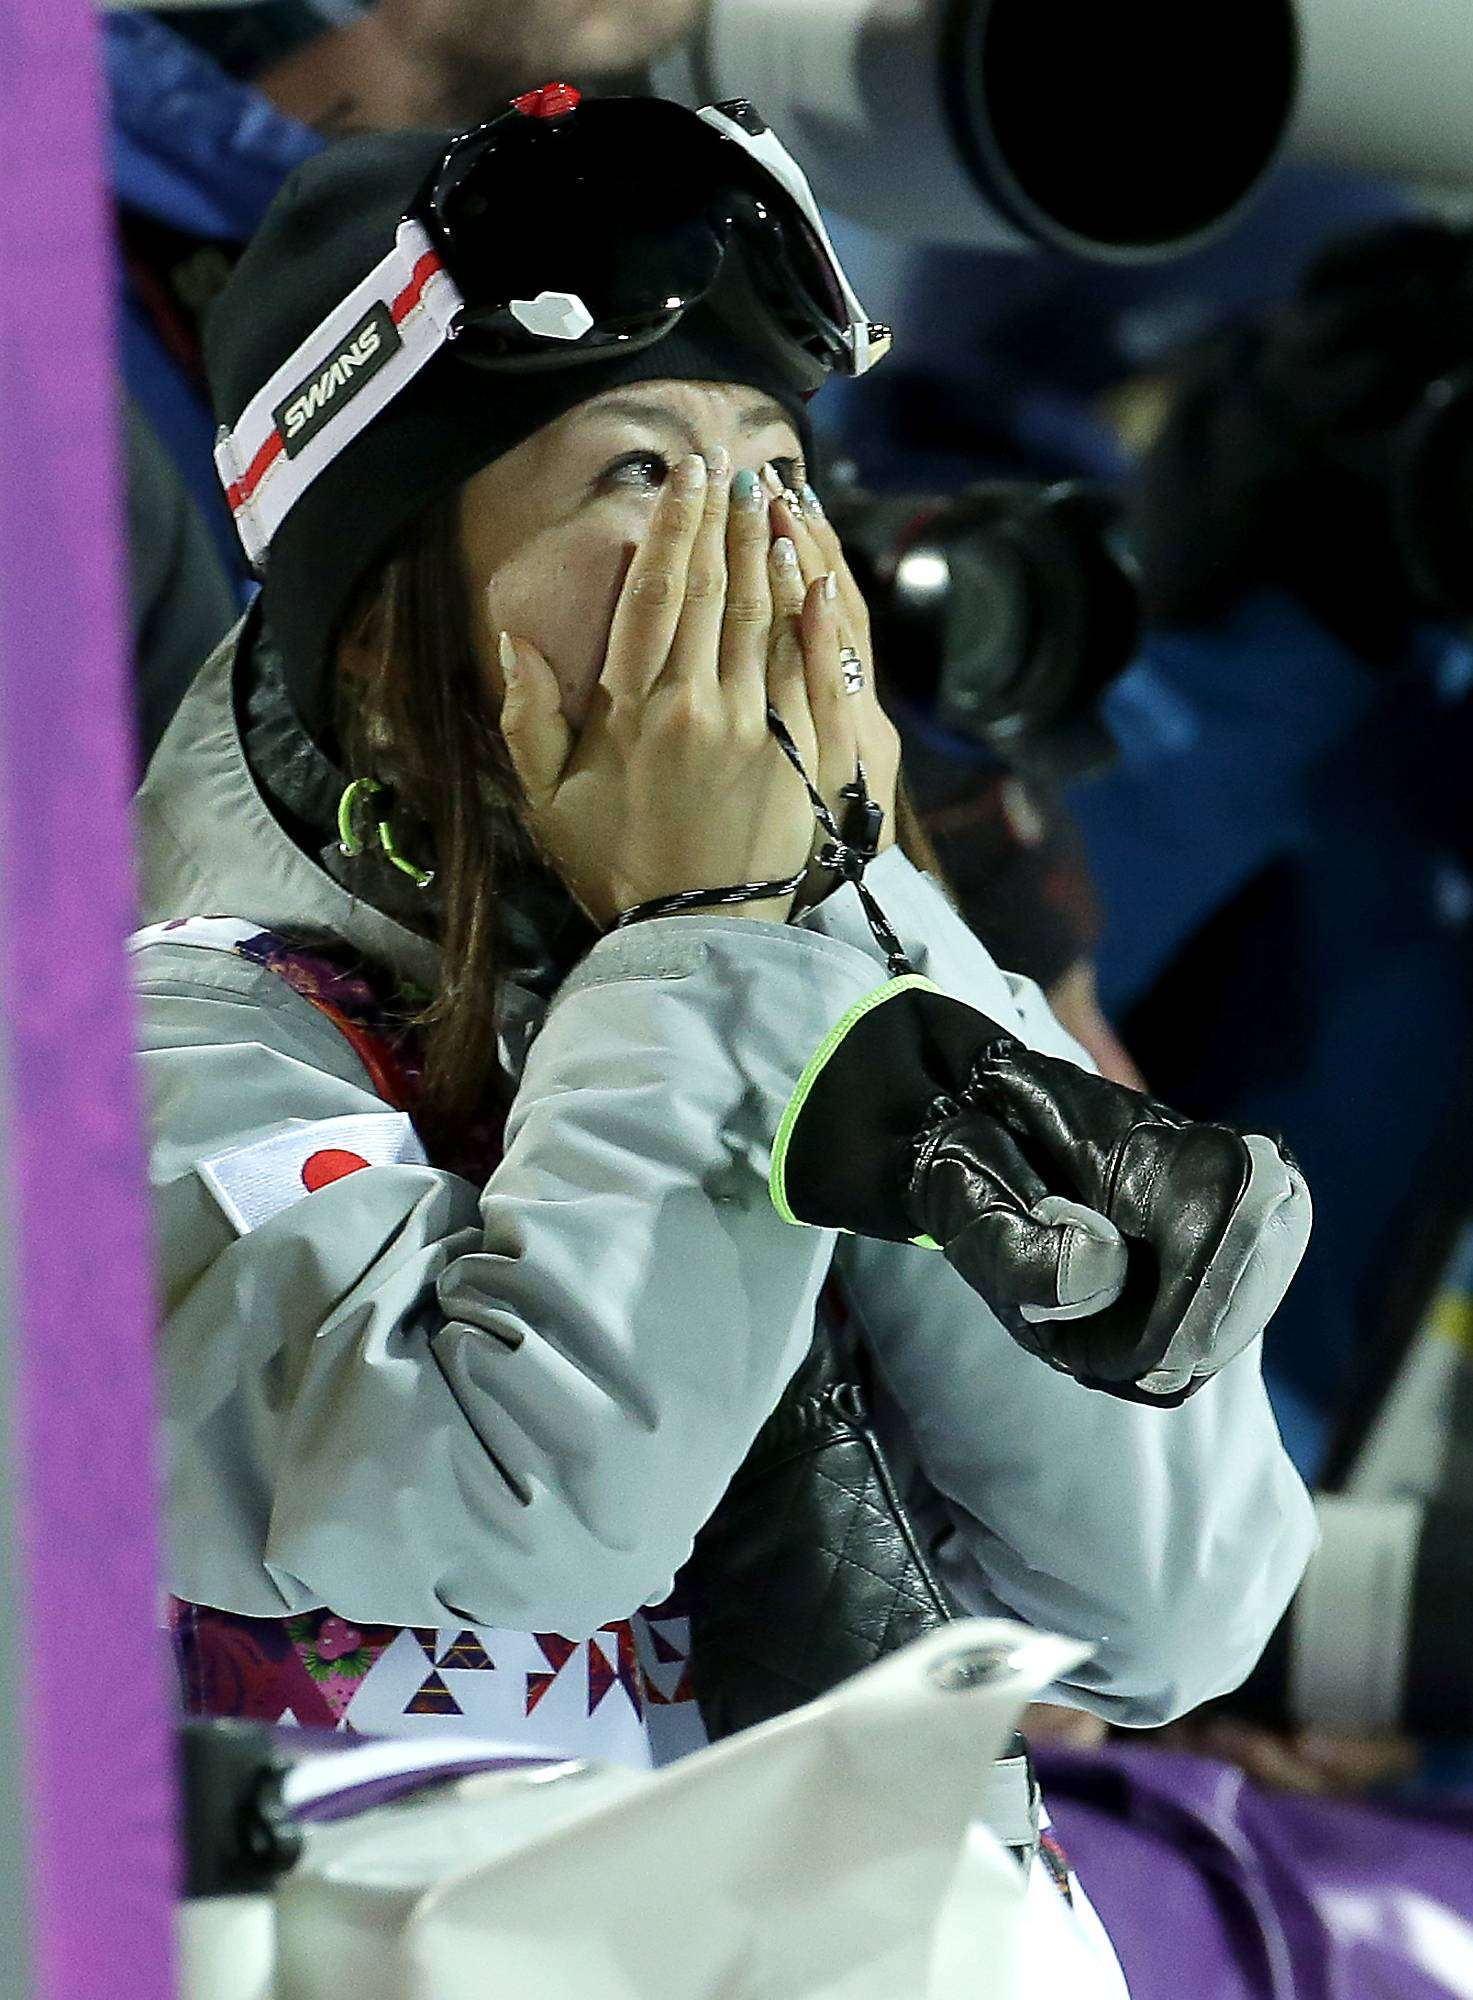 Bronze medalist Japan's Ayana Onozuka reacts after finding out she was among the top three finishers in the women's ski halfpipe competition.